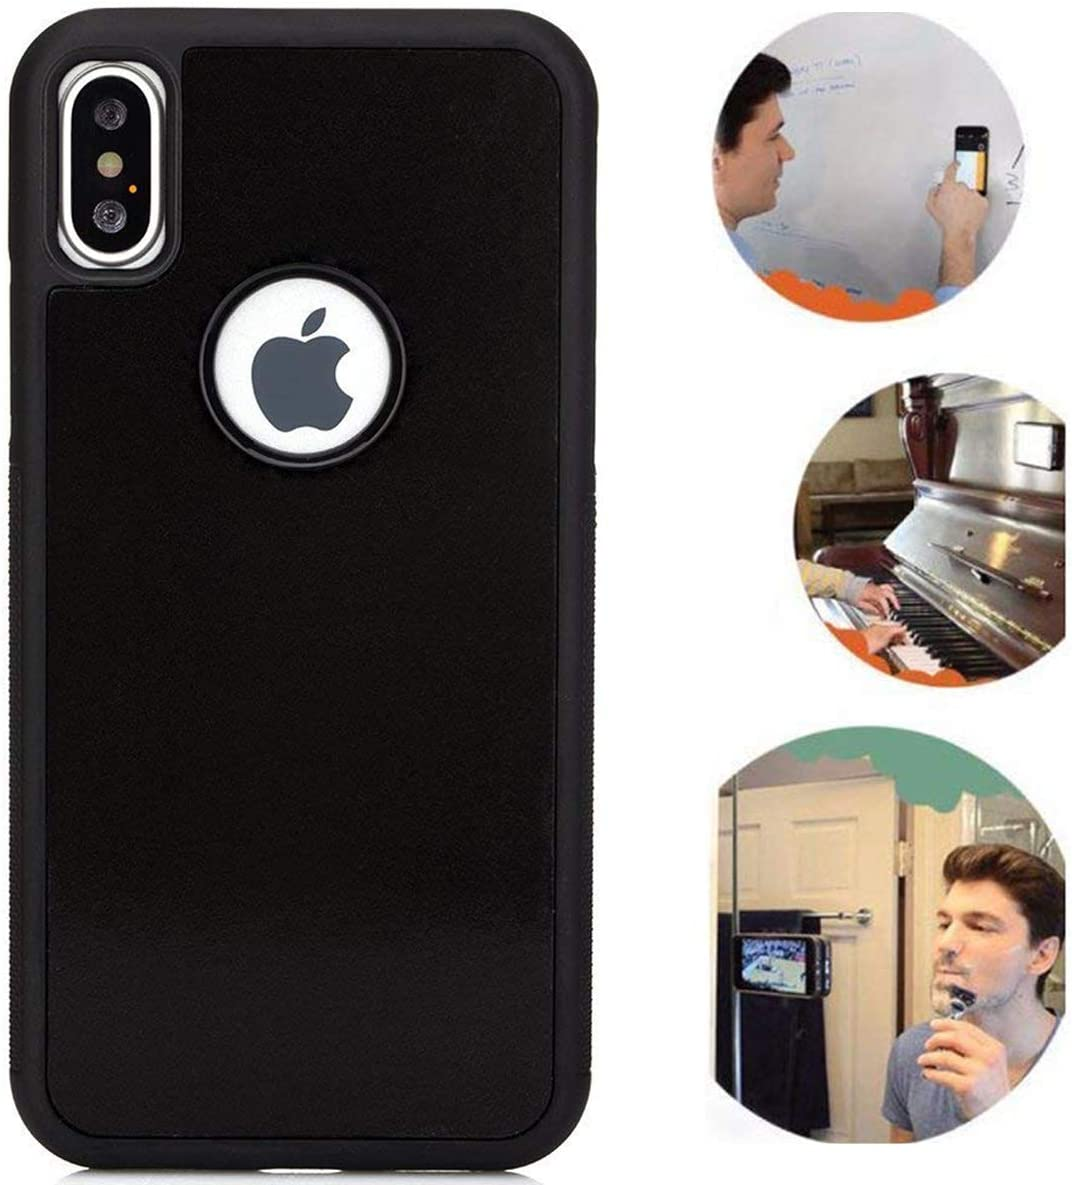 Anti Gravity Phone Case for iPhone X, iPhone Xs, Sticky Selfie Suction Black Anti Gravity Phone Case for iPhone X/Xs Magic Nano Stick on Smooth Flat Surface with Dust Proof Film